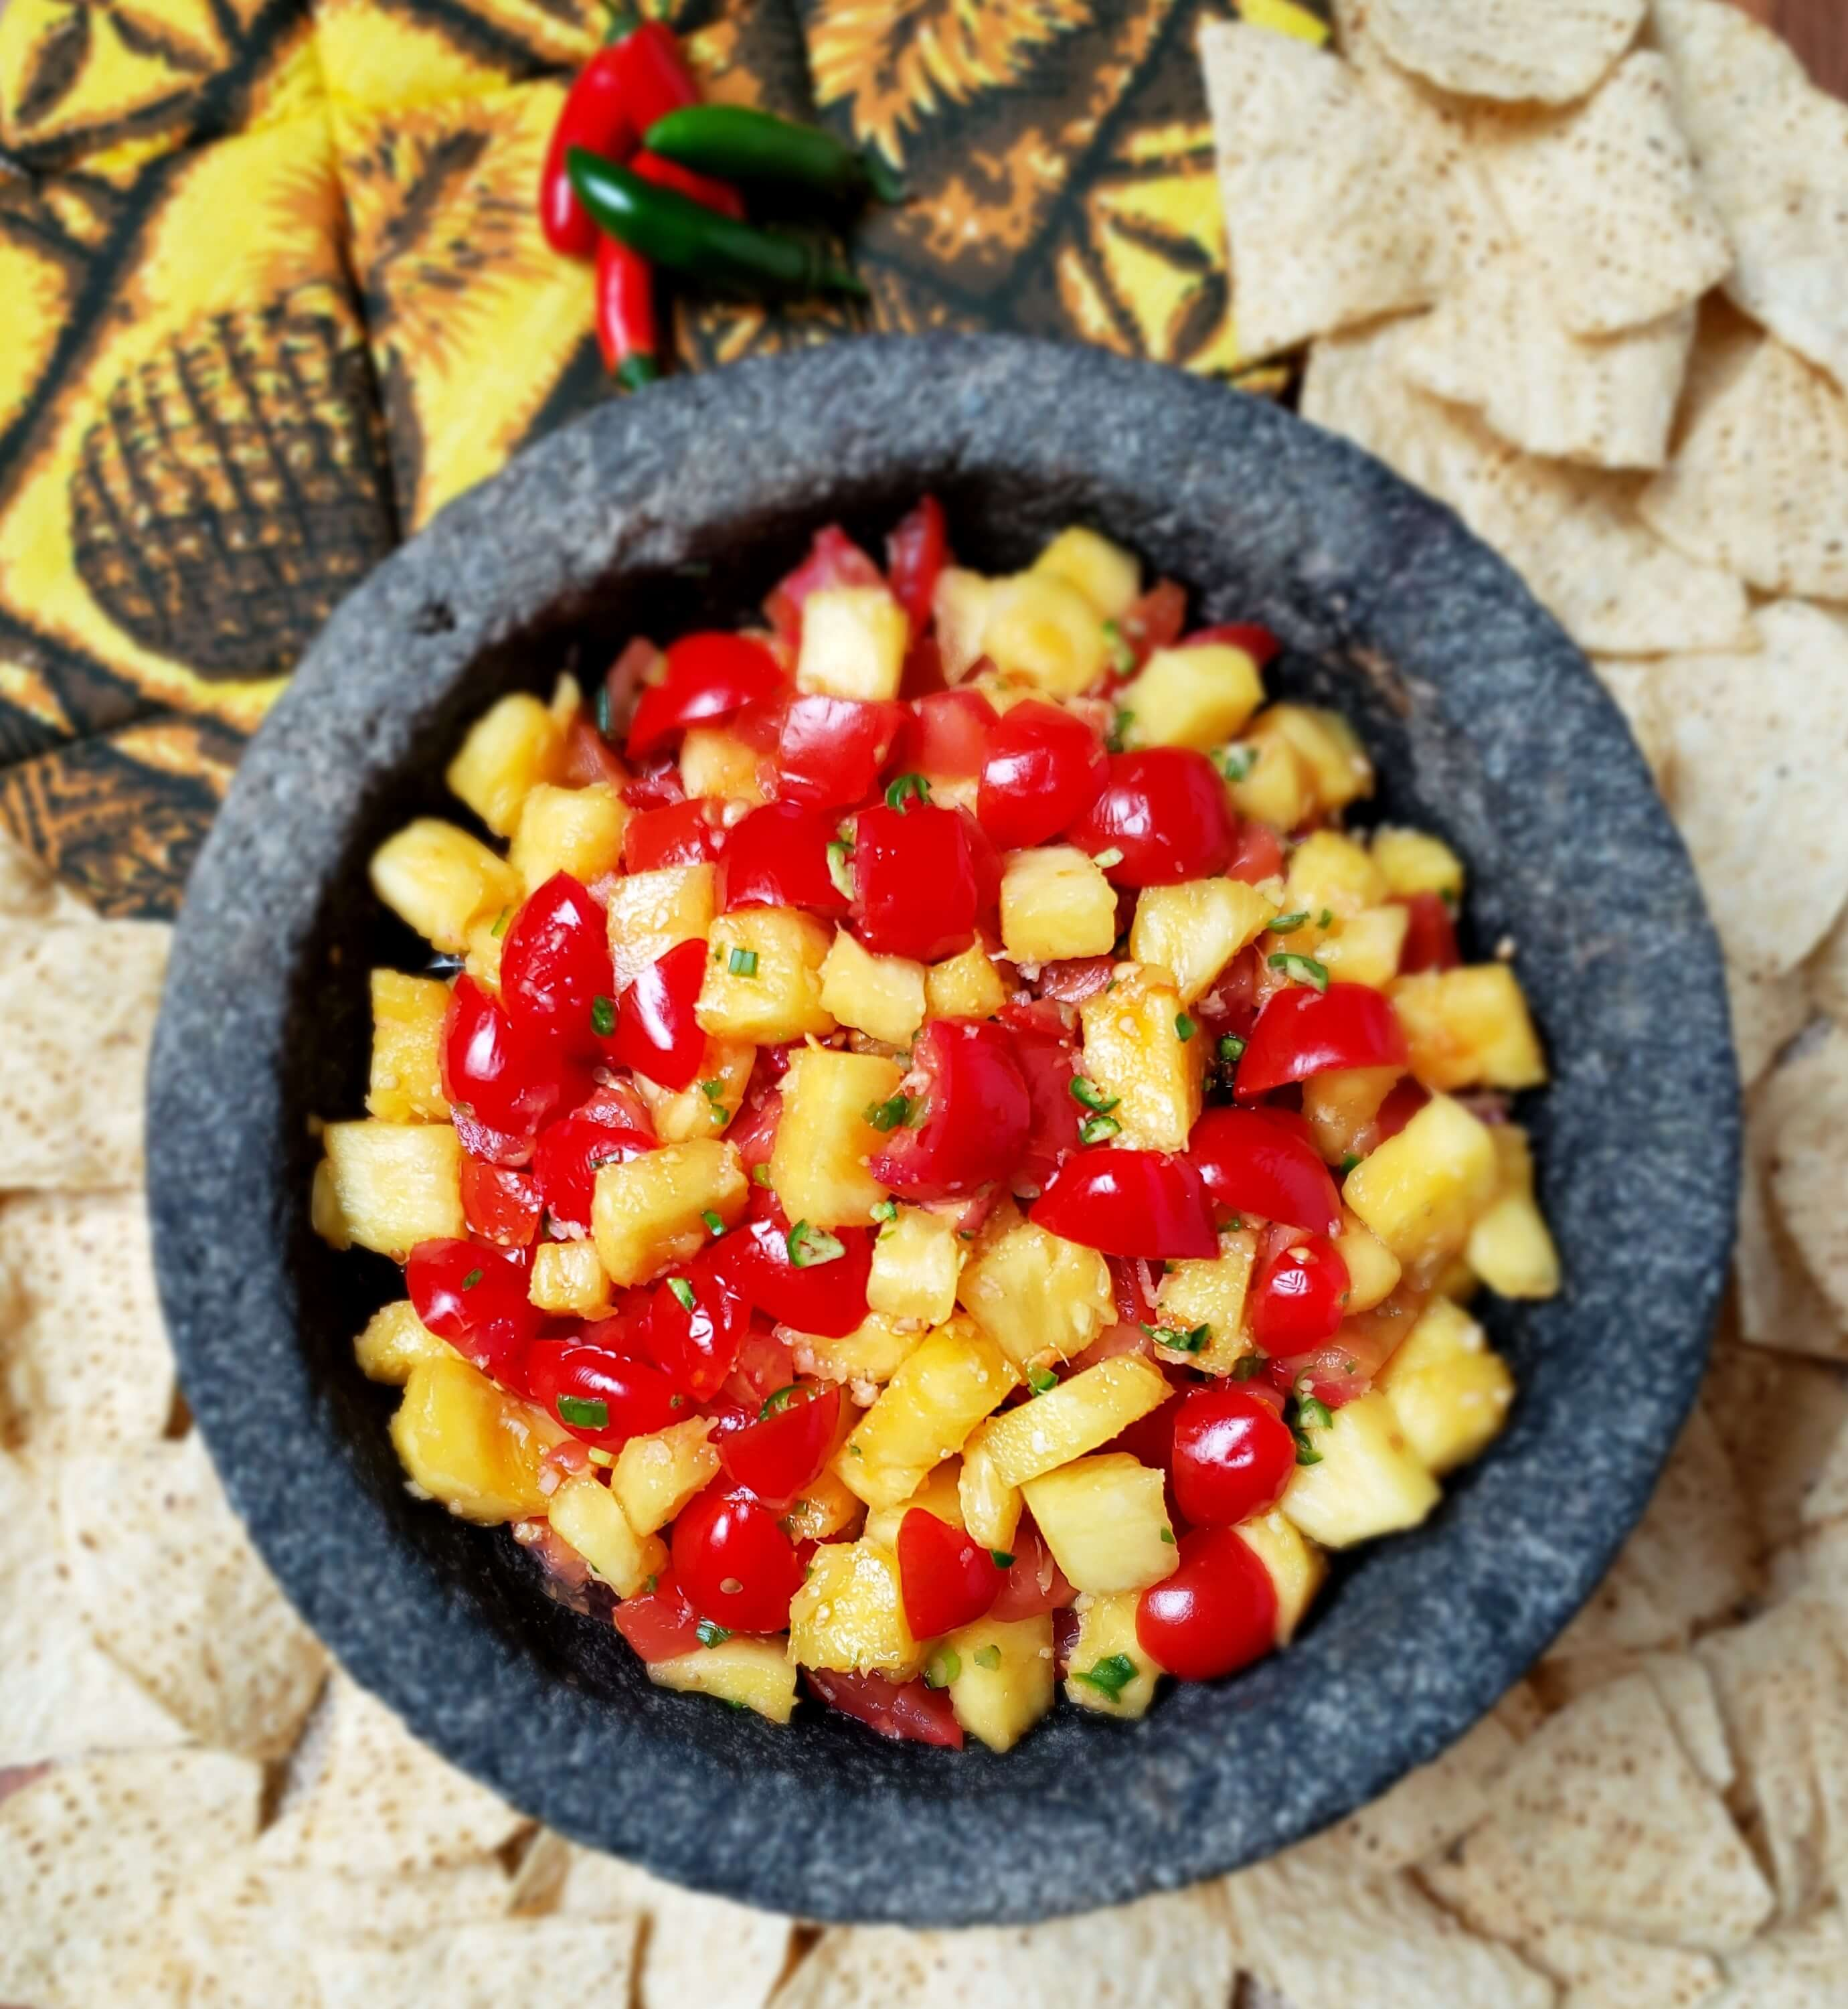 Pineapple ginger salsa recipe